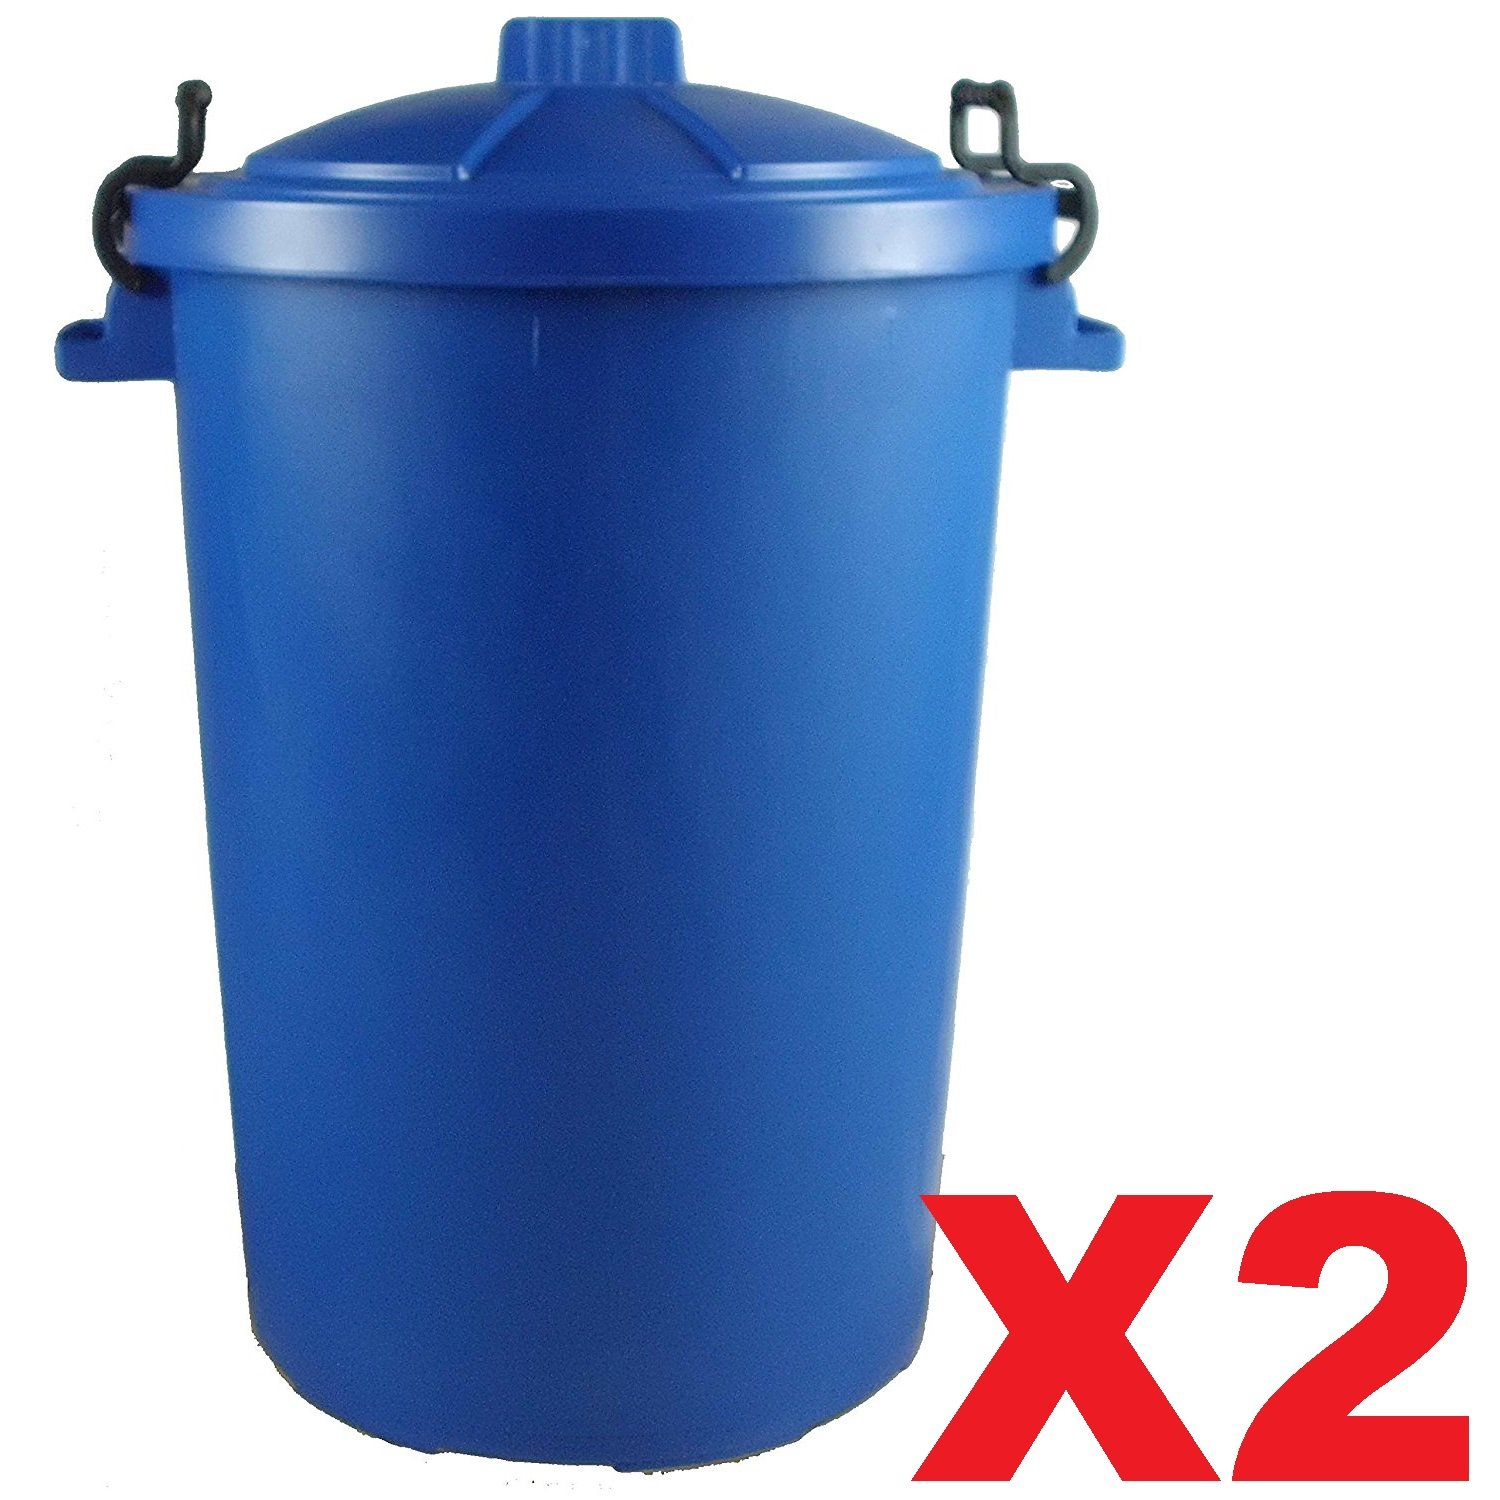 2 x BLUE 85 Litre 85L Extra Large Colour Plastic Dustbin Garden Bin Clip on Locking Lid Heavy Duty for Rubbish Recycle Waste Animal Feed Storage Unit UK